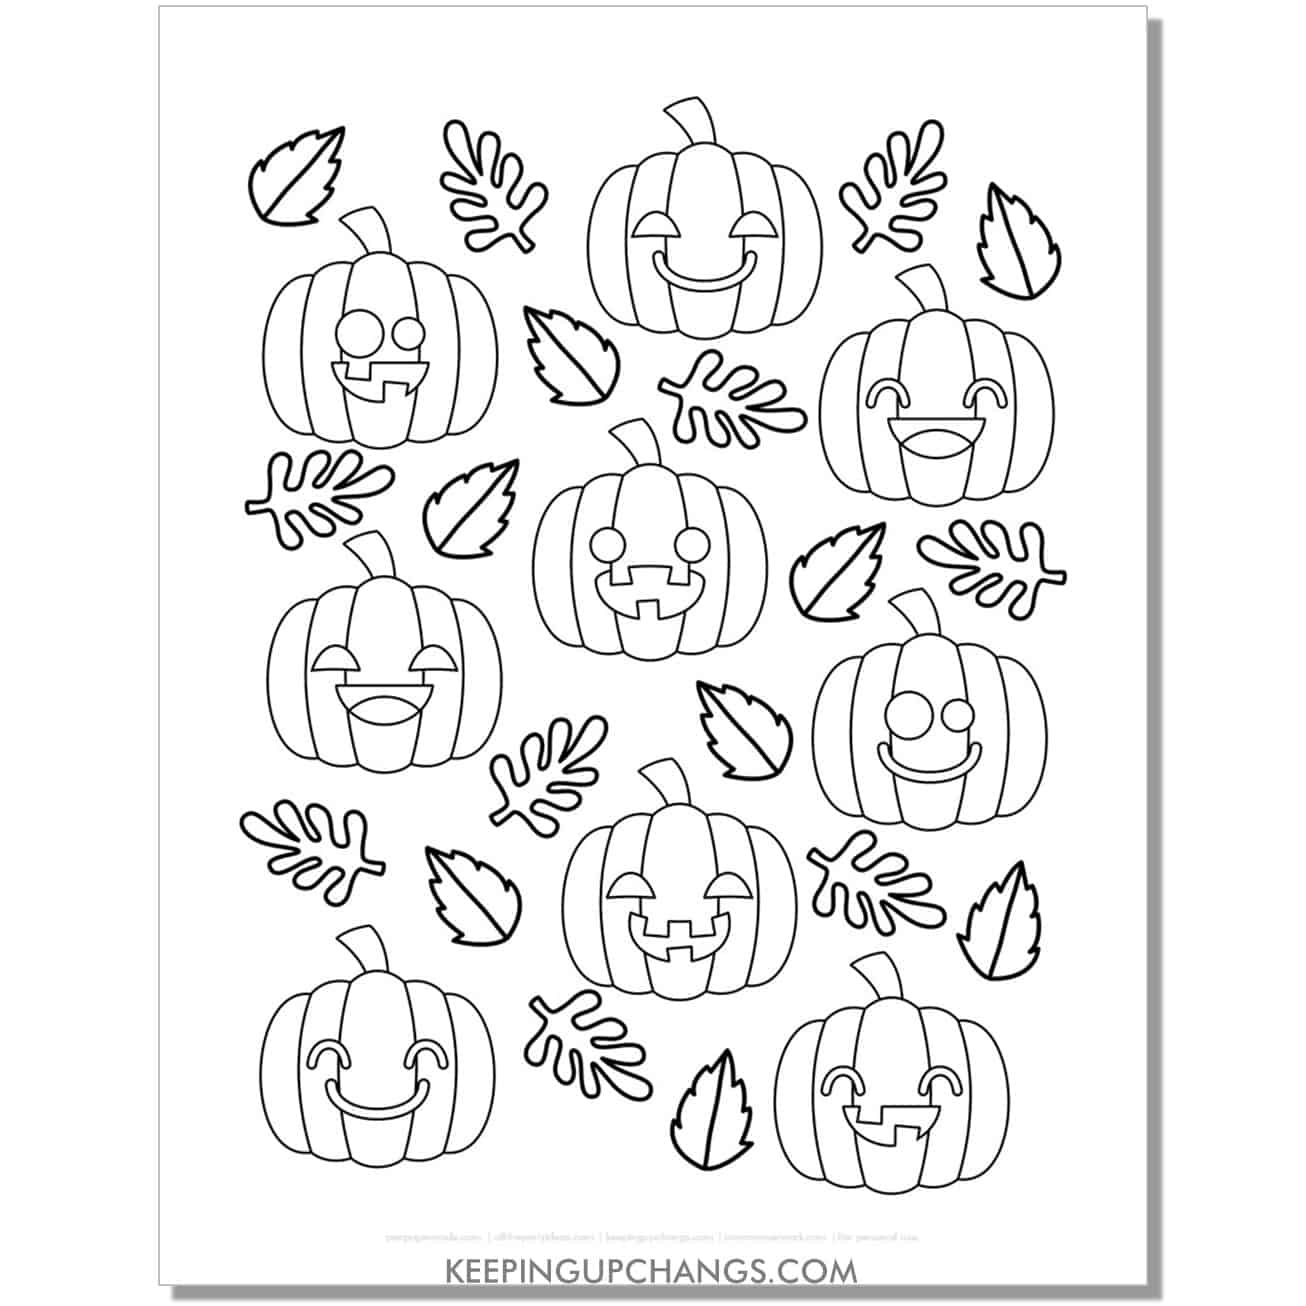 free cute pumpkin patch emoji coloring page for fall, halloween, thanksgiving.